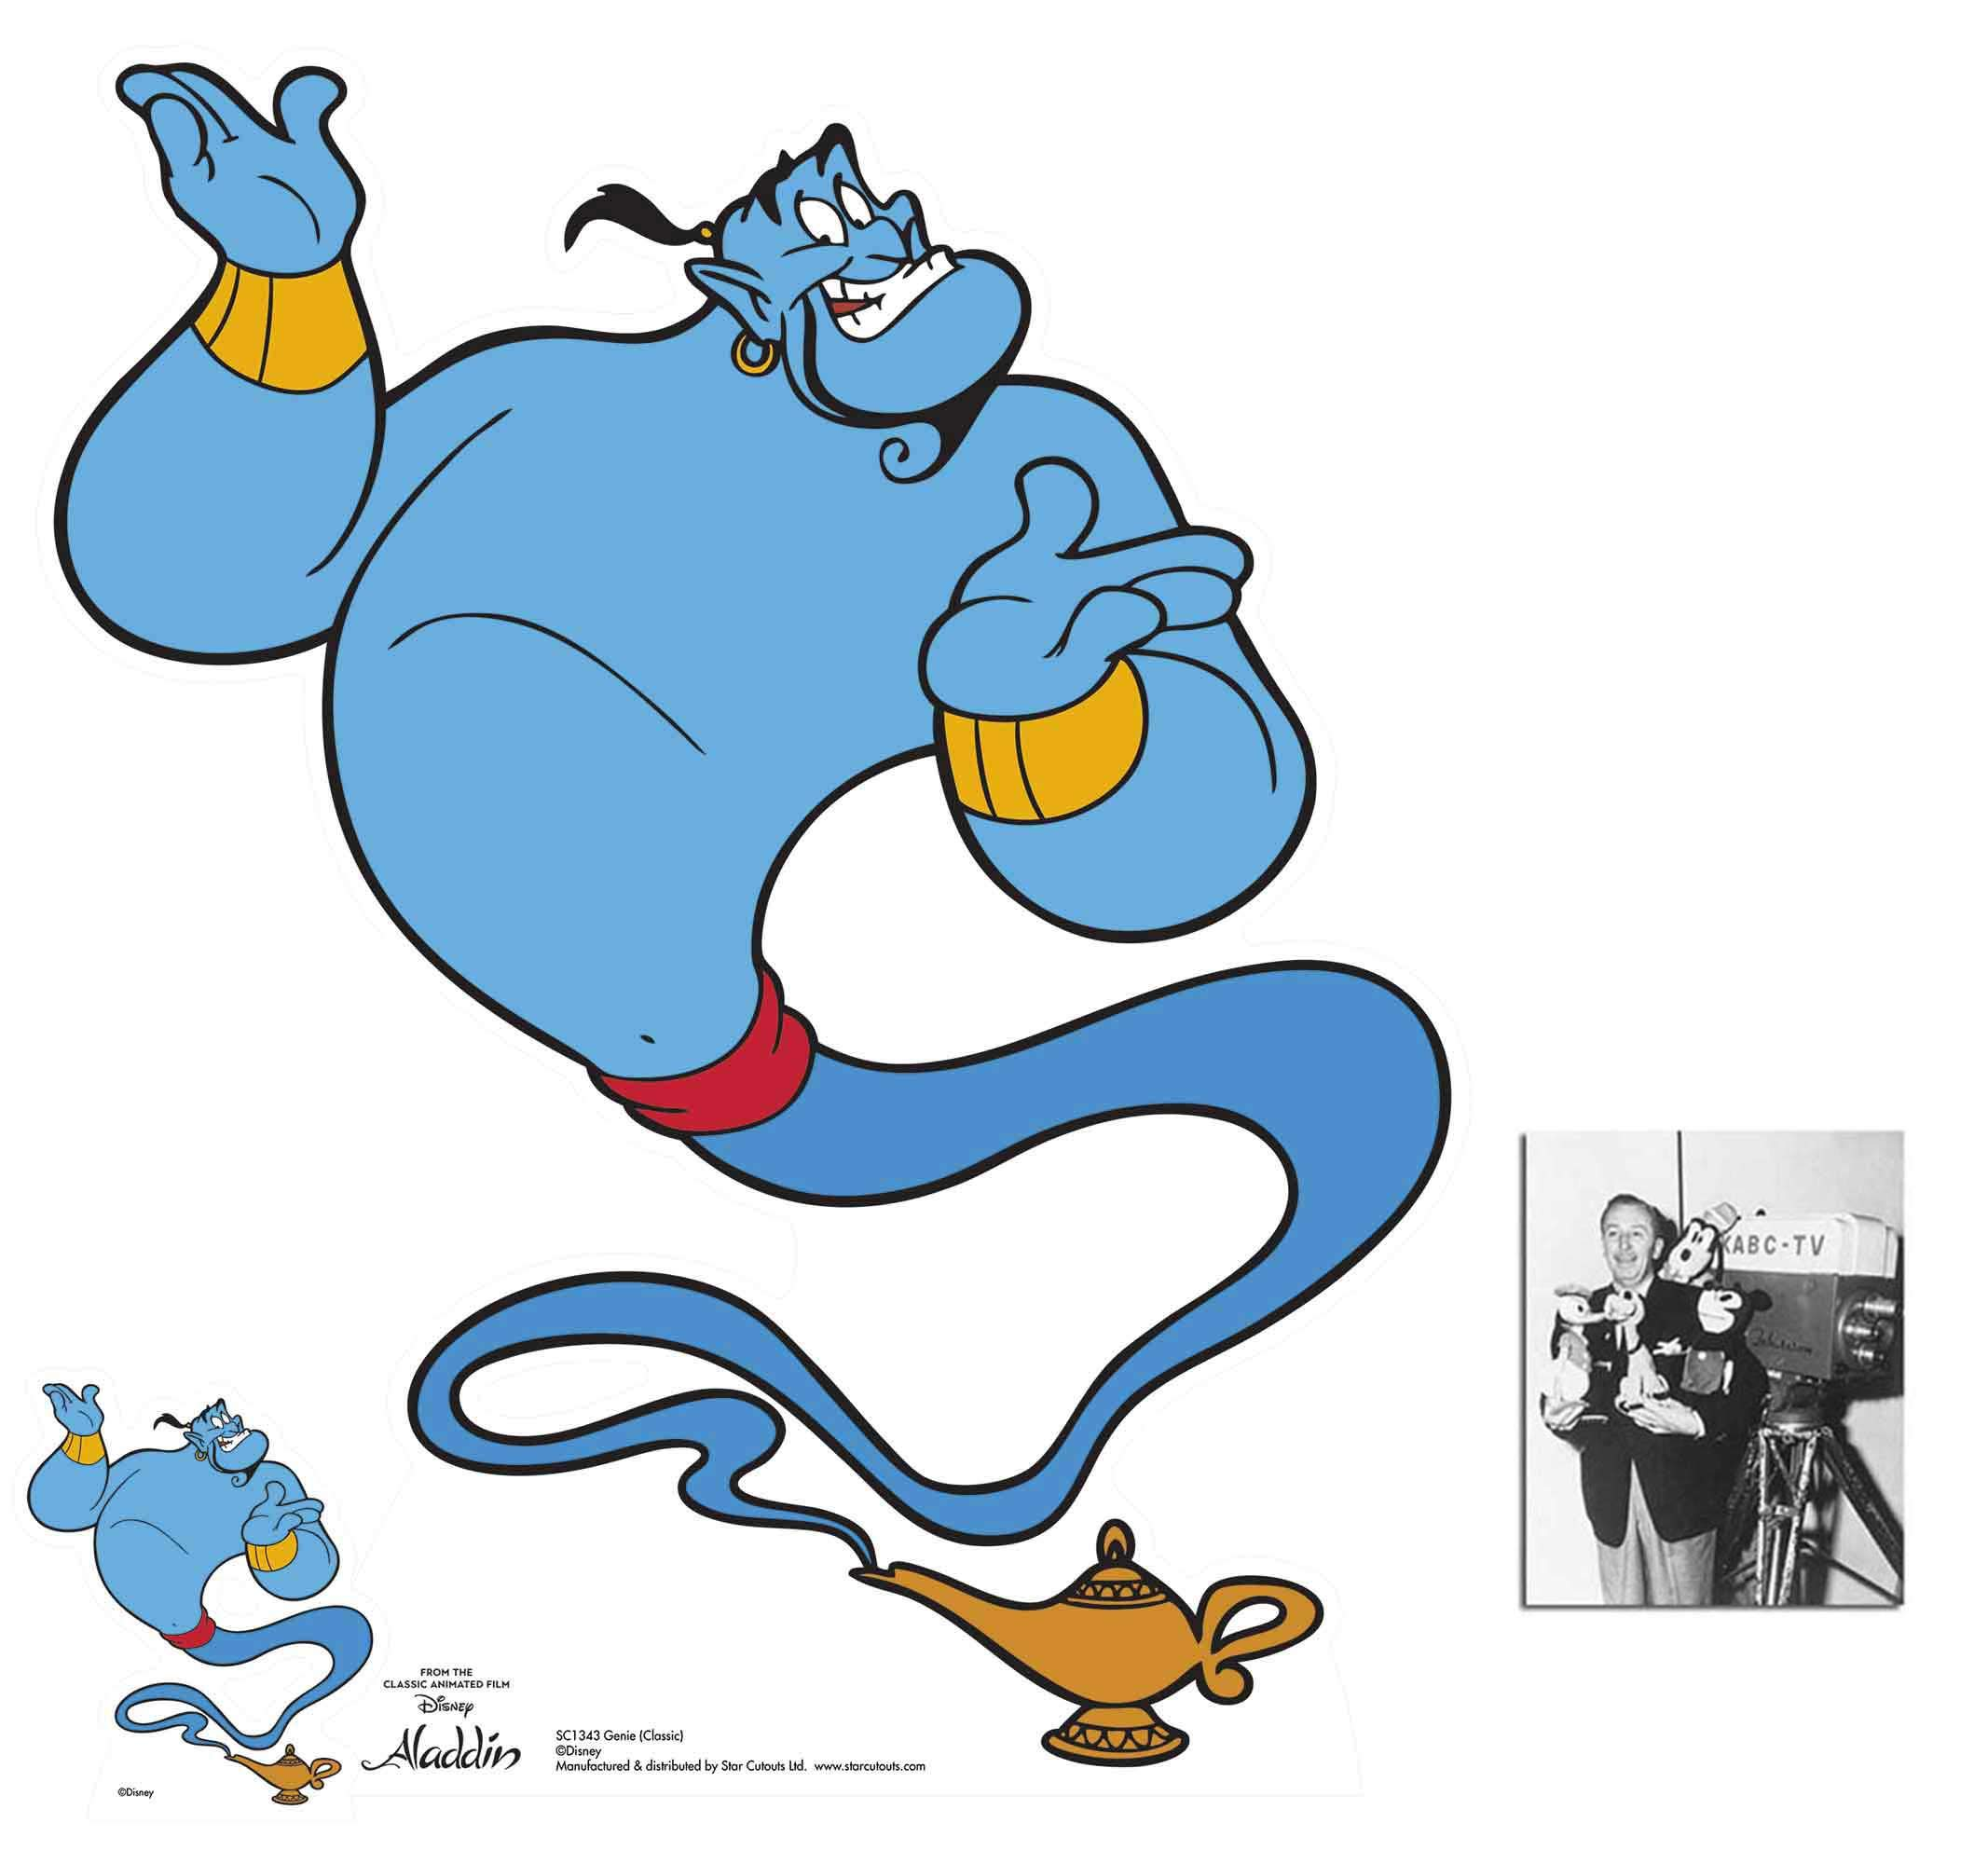 Genie from Aladdin Classic Official Disney Lifesize Cardboard Cutout/Standee Fan Pack, 88cm x 72cm Includes Free Mini Cutout and 8x10 Photo